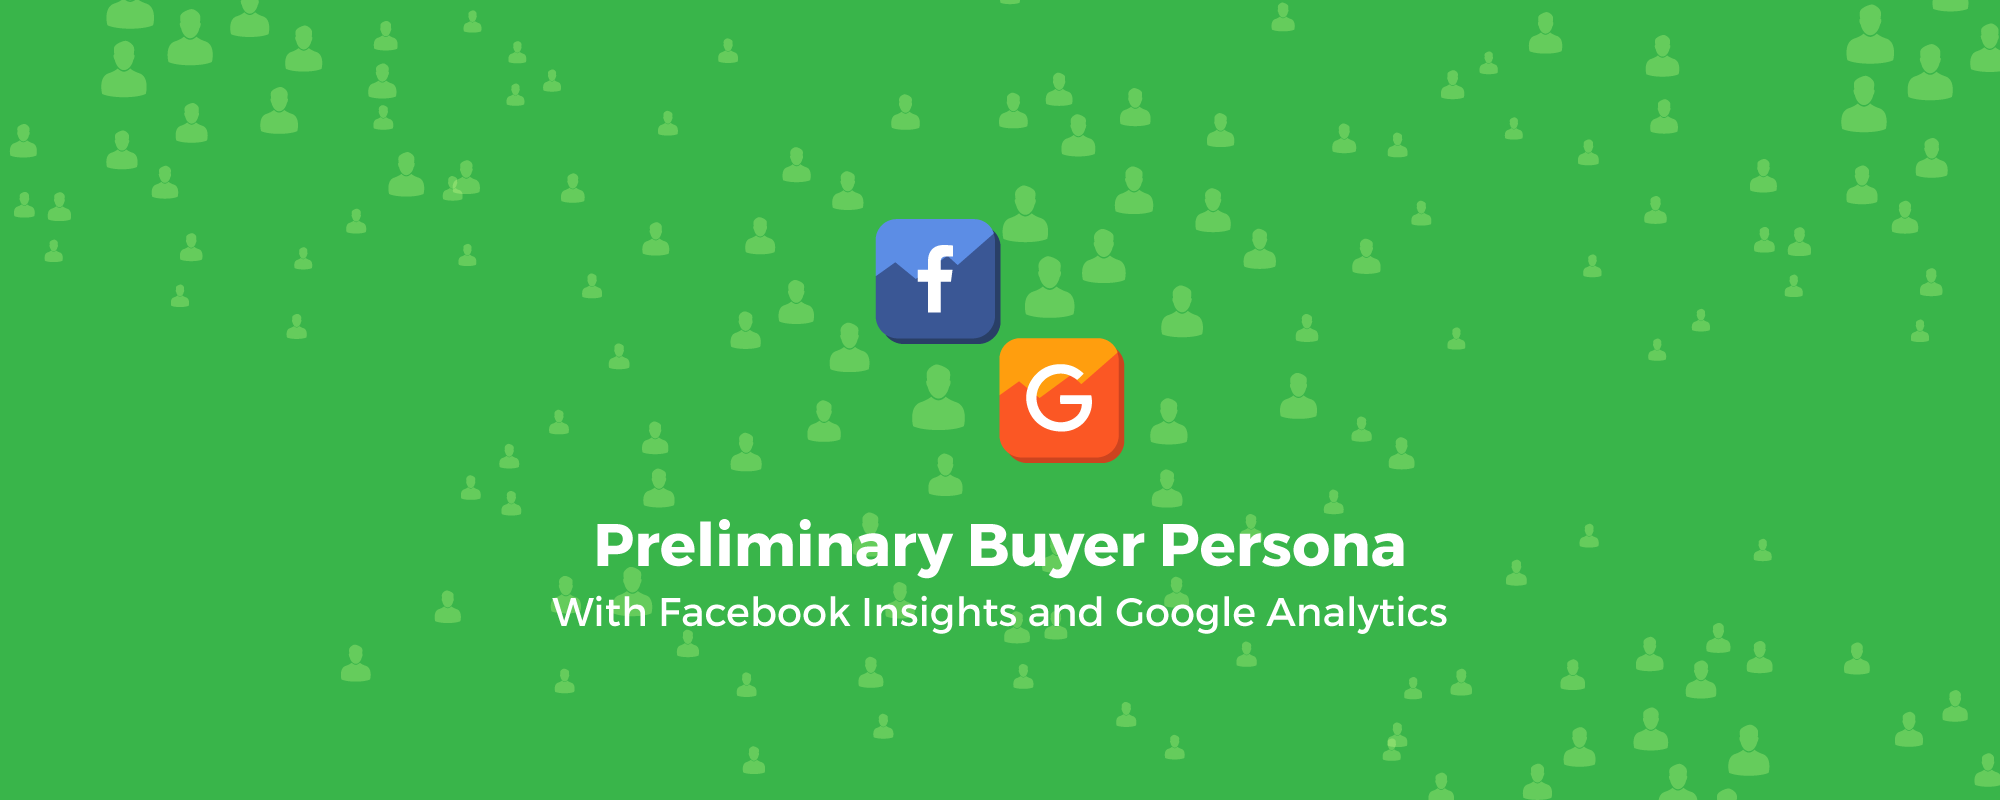 How to Create a Preliminary Buyer Persona With Facebook Insights and Google Analytics